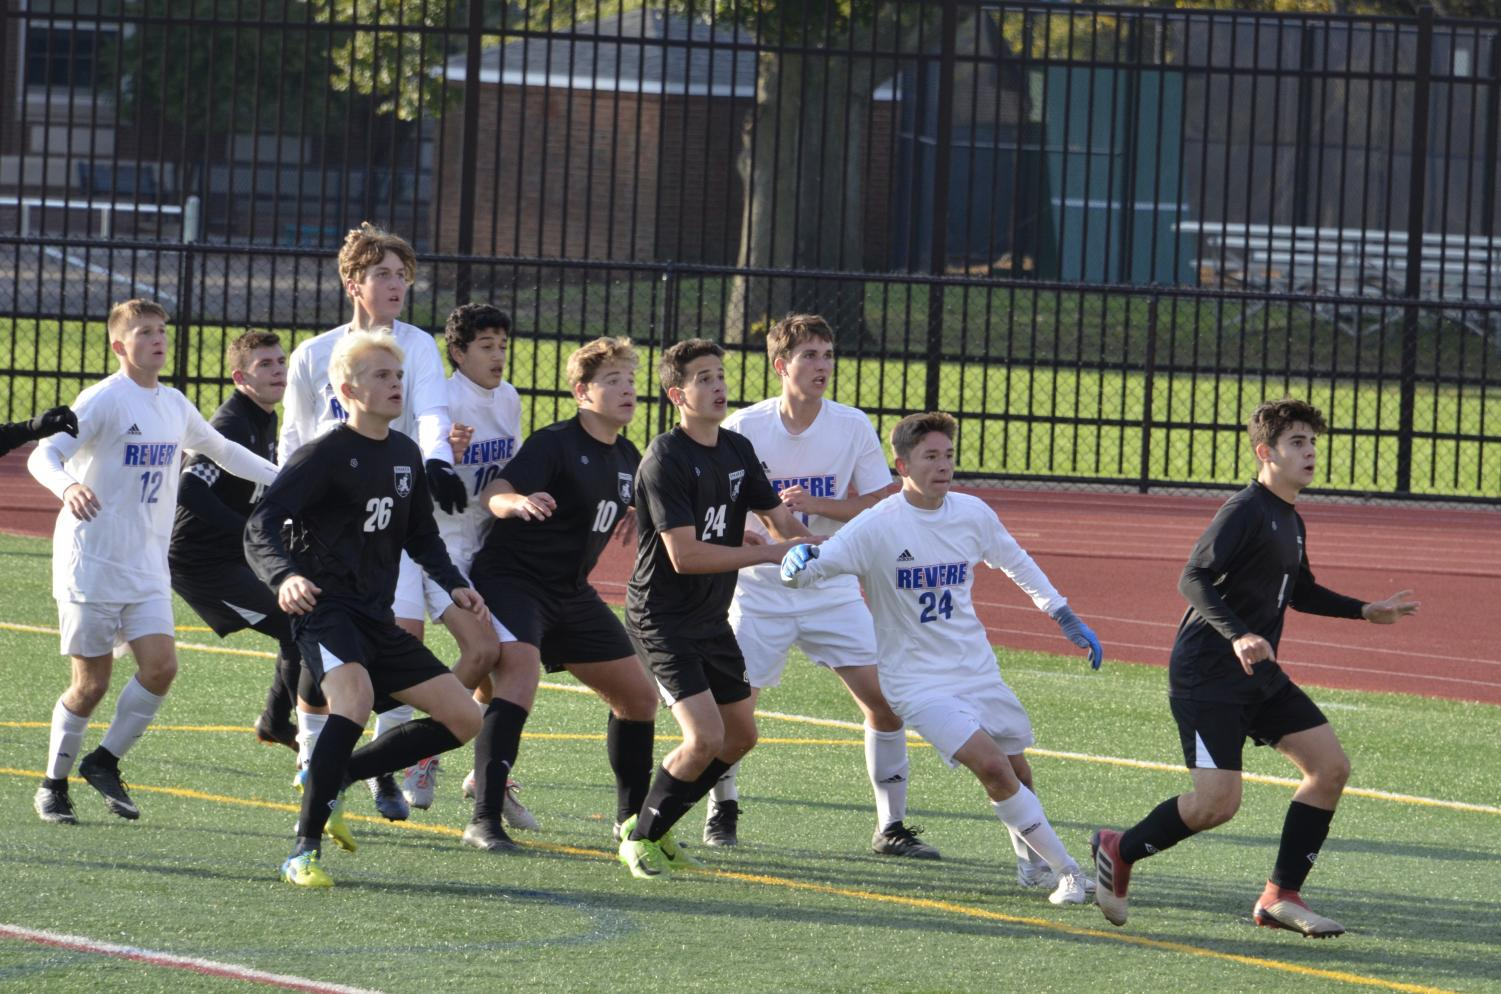 Varsity boys soccer team prepares for the incoming corner kick. They faced the Revere Minutemen on Oct. 13.